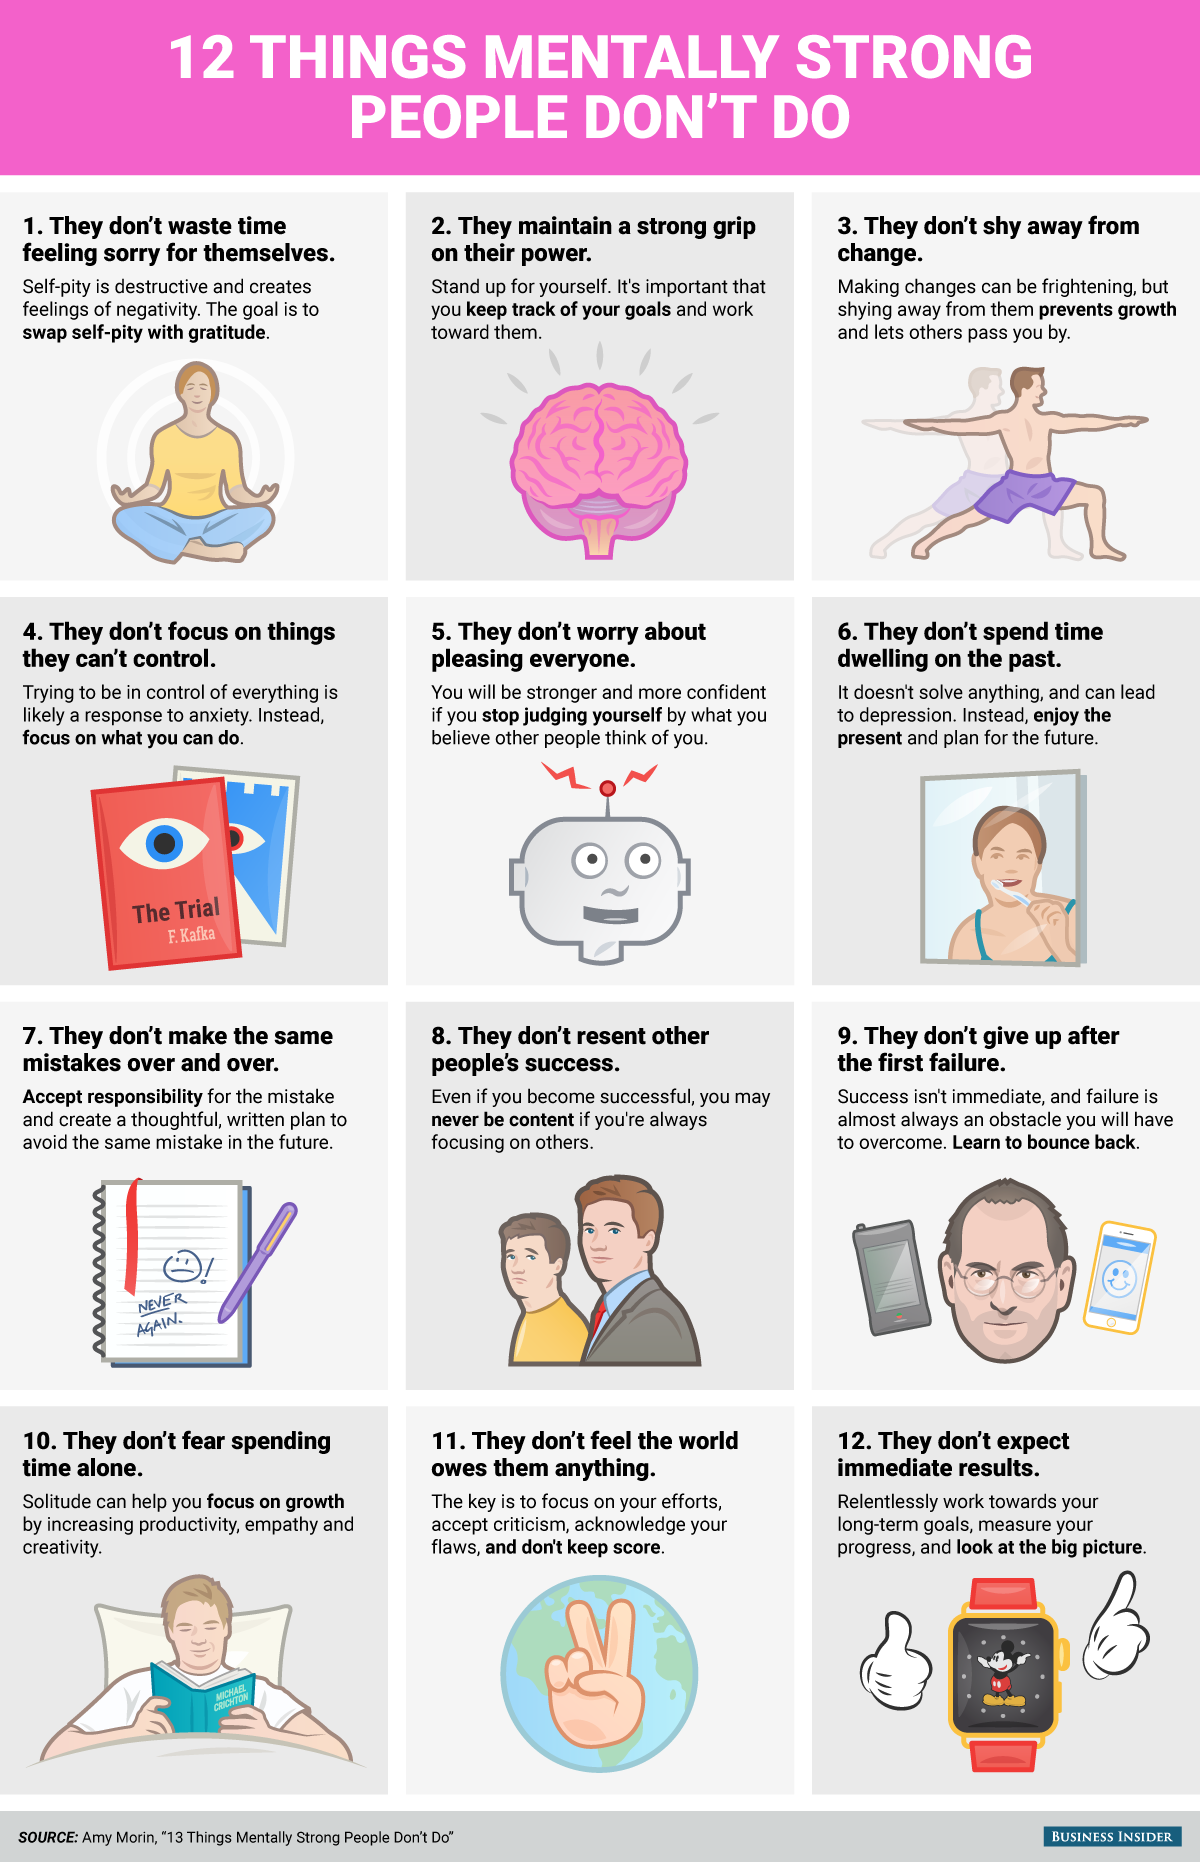 BI_Graphics_12 things mentally strong people don't do